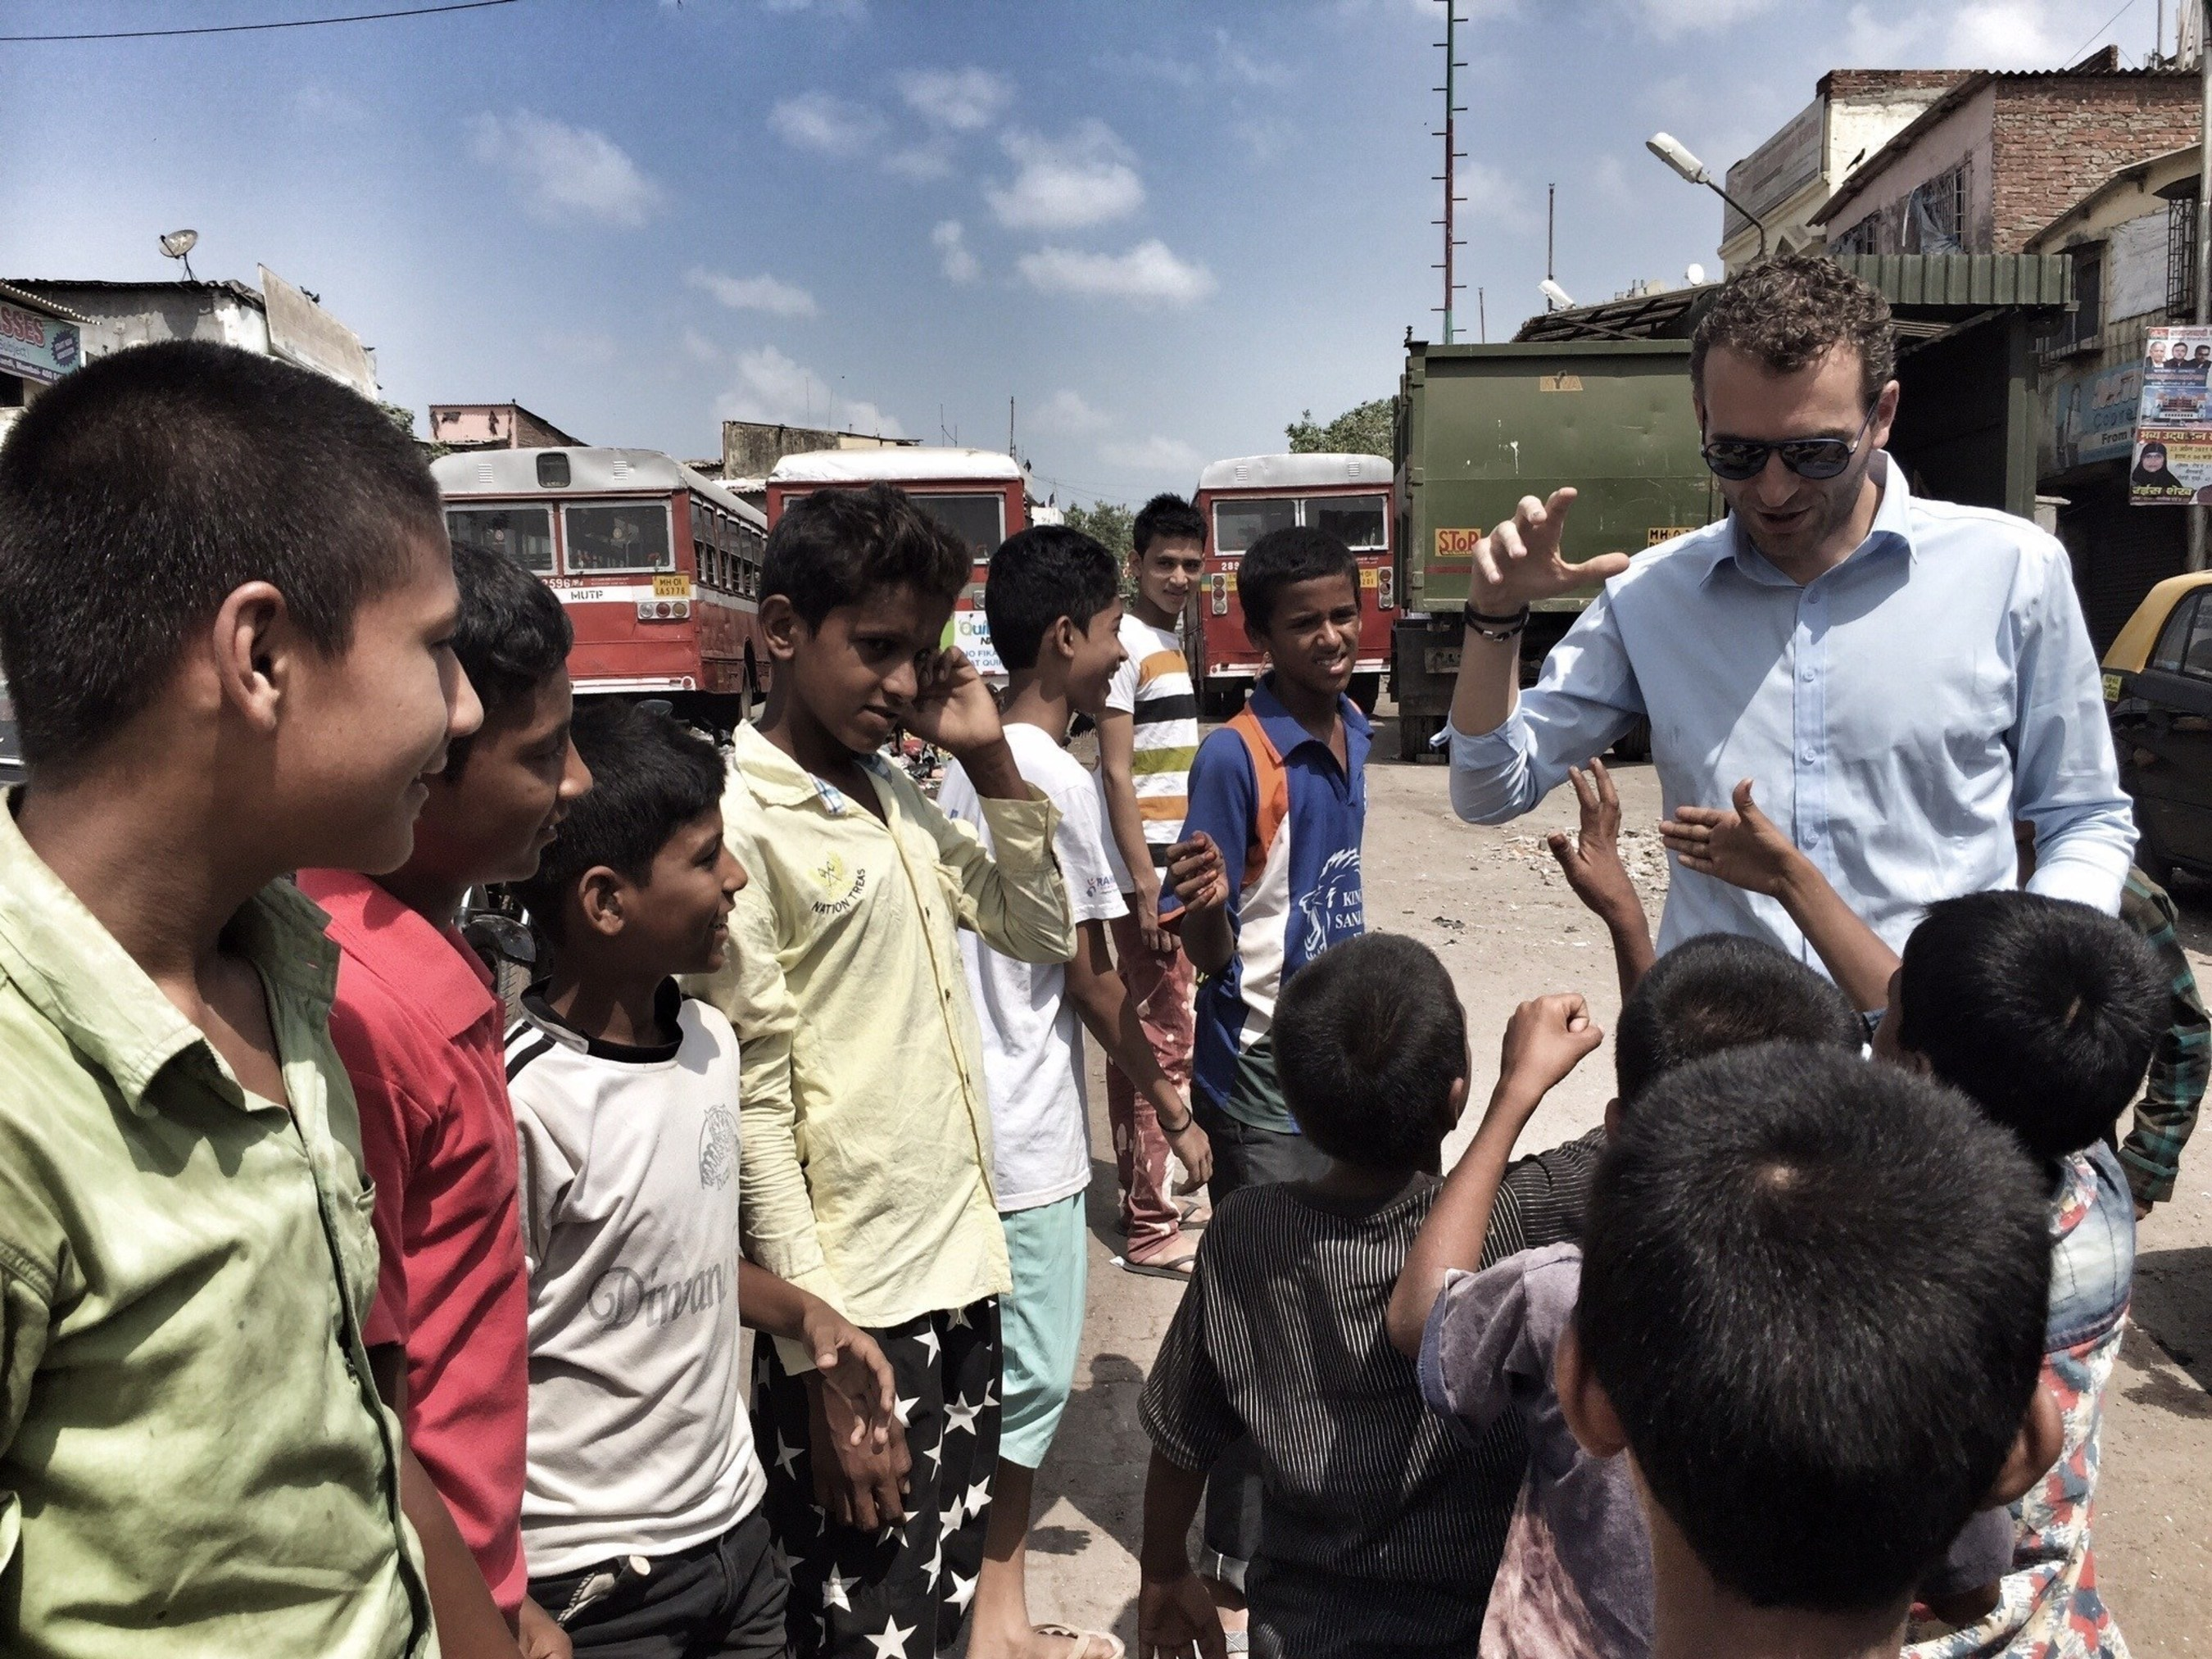 CEO and Founder of Epic Foundation, Alexandre Mars, meets with youth in Mumbai during Epic Foundation's global selection tour